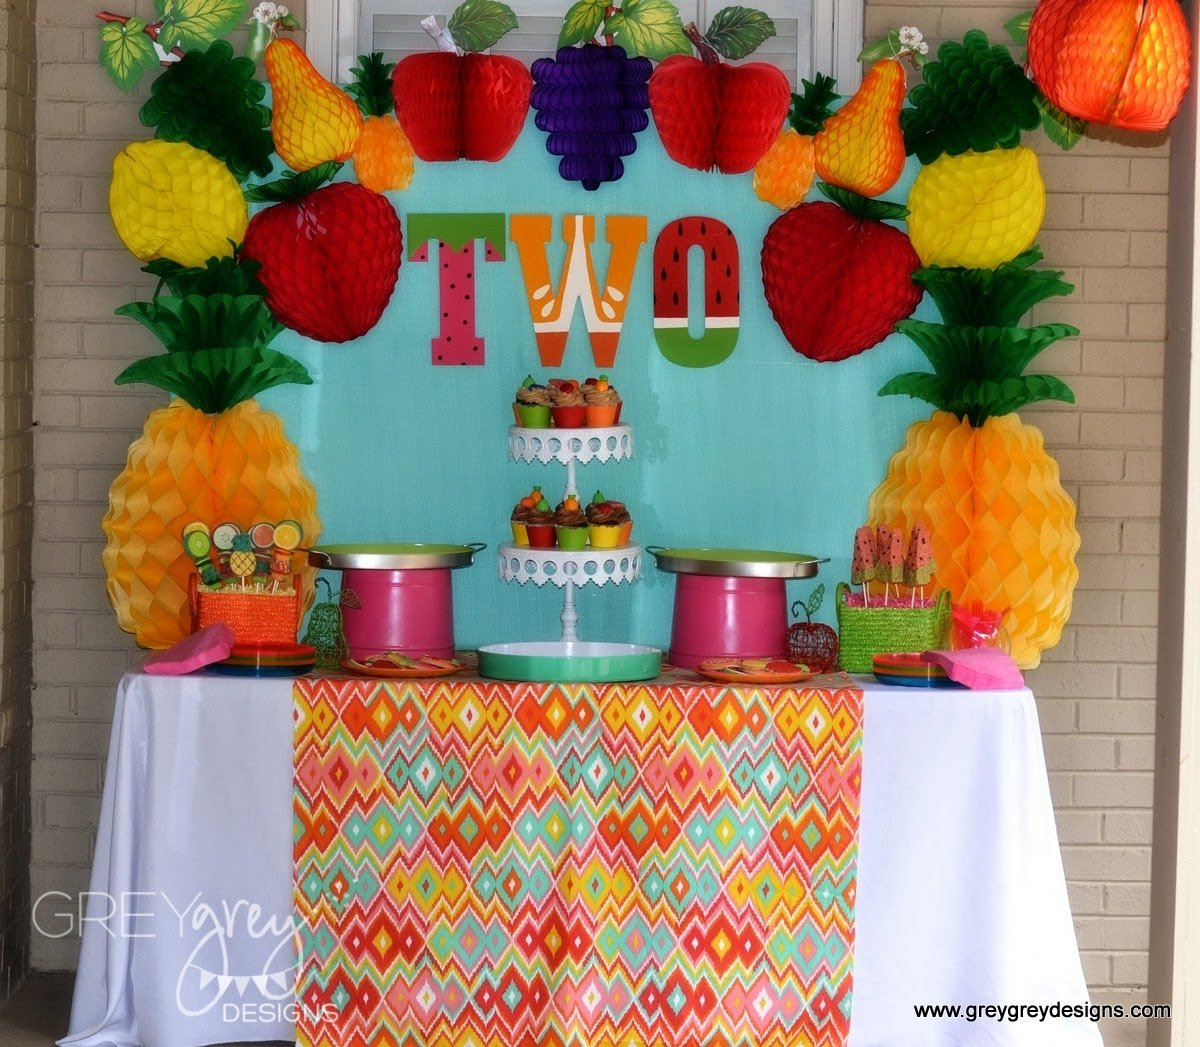 10 Cute Two Year Old Birthday Party Ideas 2 Idea Fruit Theme